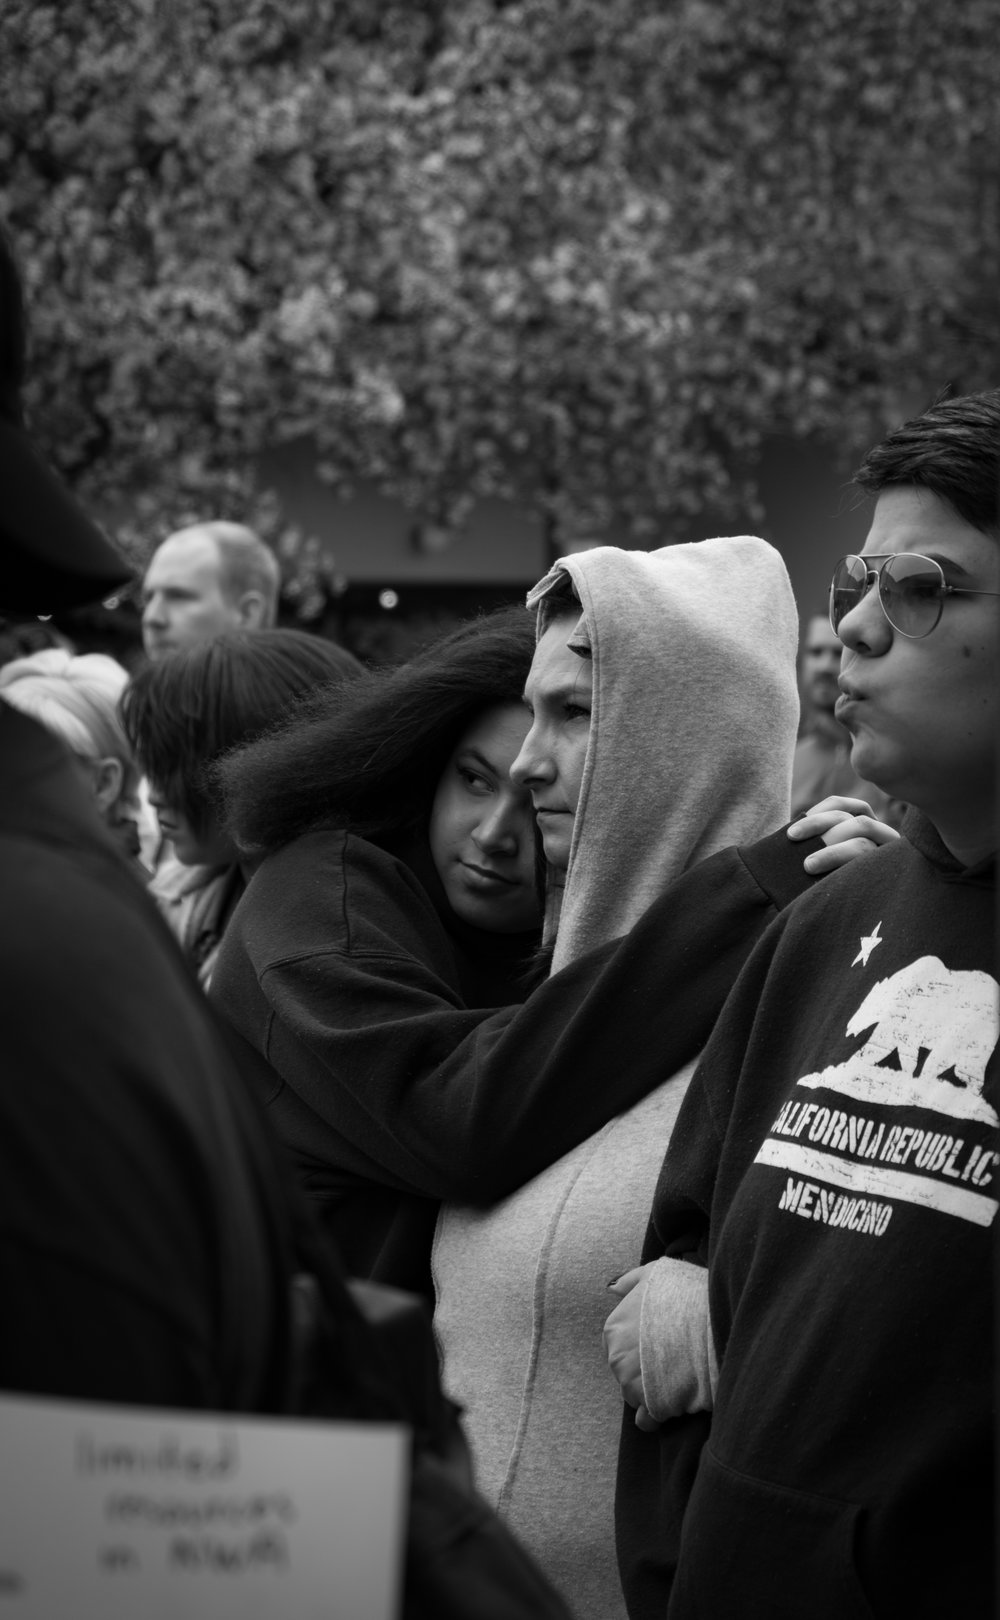 Two women embrace in a moment of compassion as a homeless man stands in front of the crowd to tell his story.